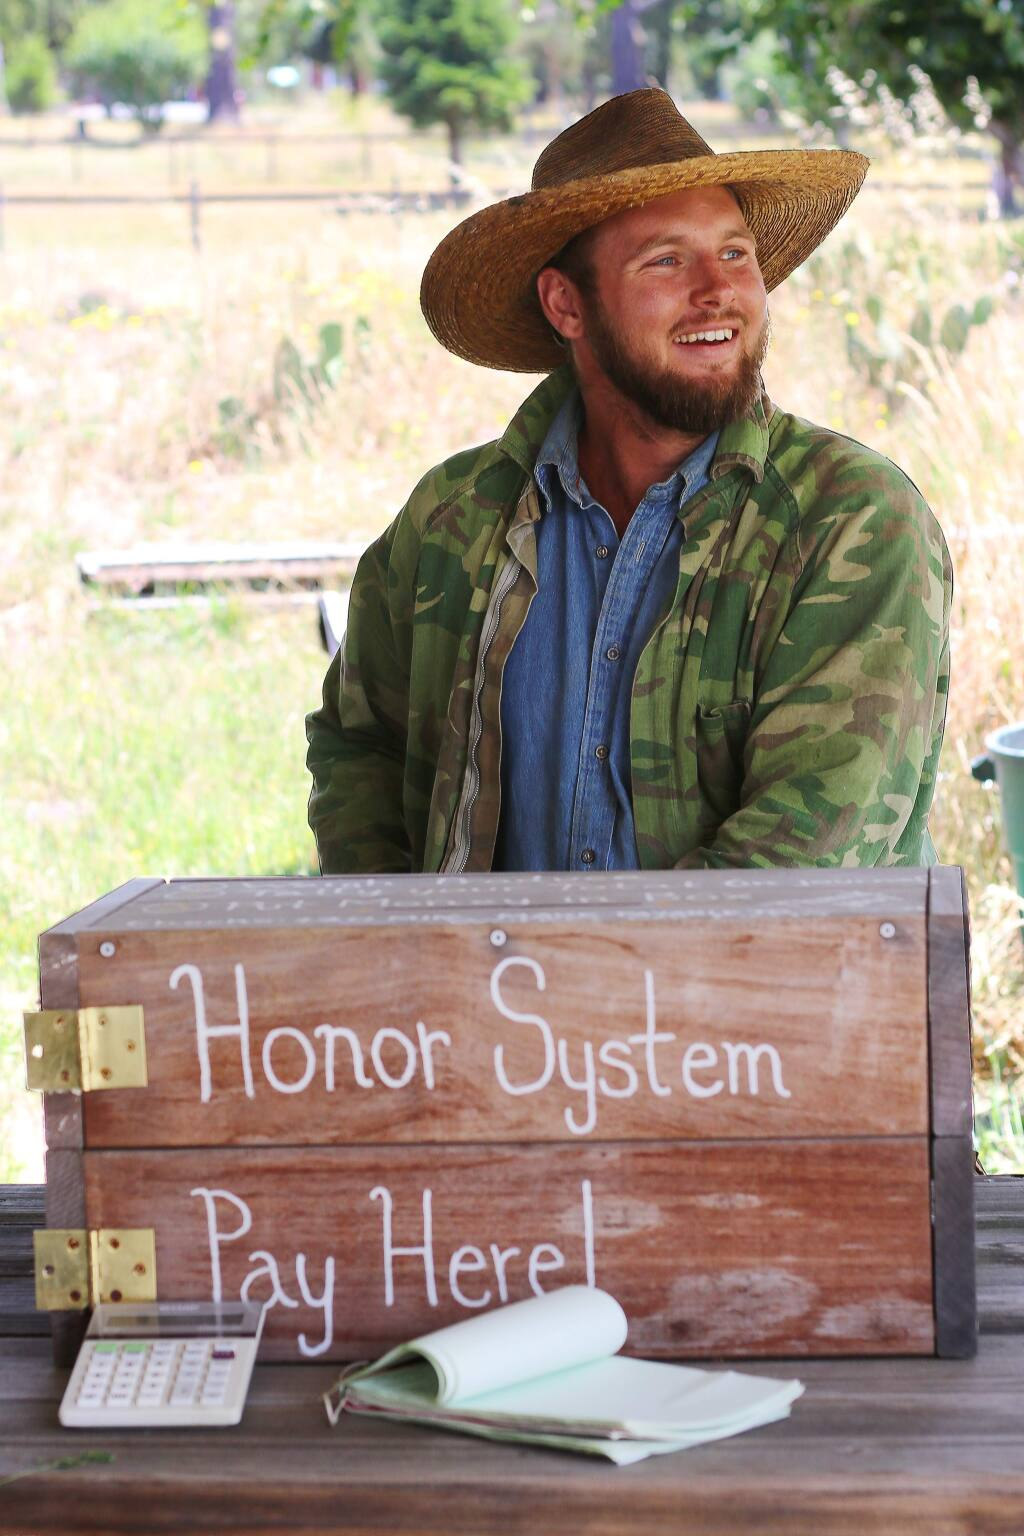 Farmer Will Scott of Worker Bee Farm in Freestone, California has a farm stand Friday through Monday during summer and fall seasons. (Heather Irwin/PD)